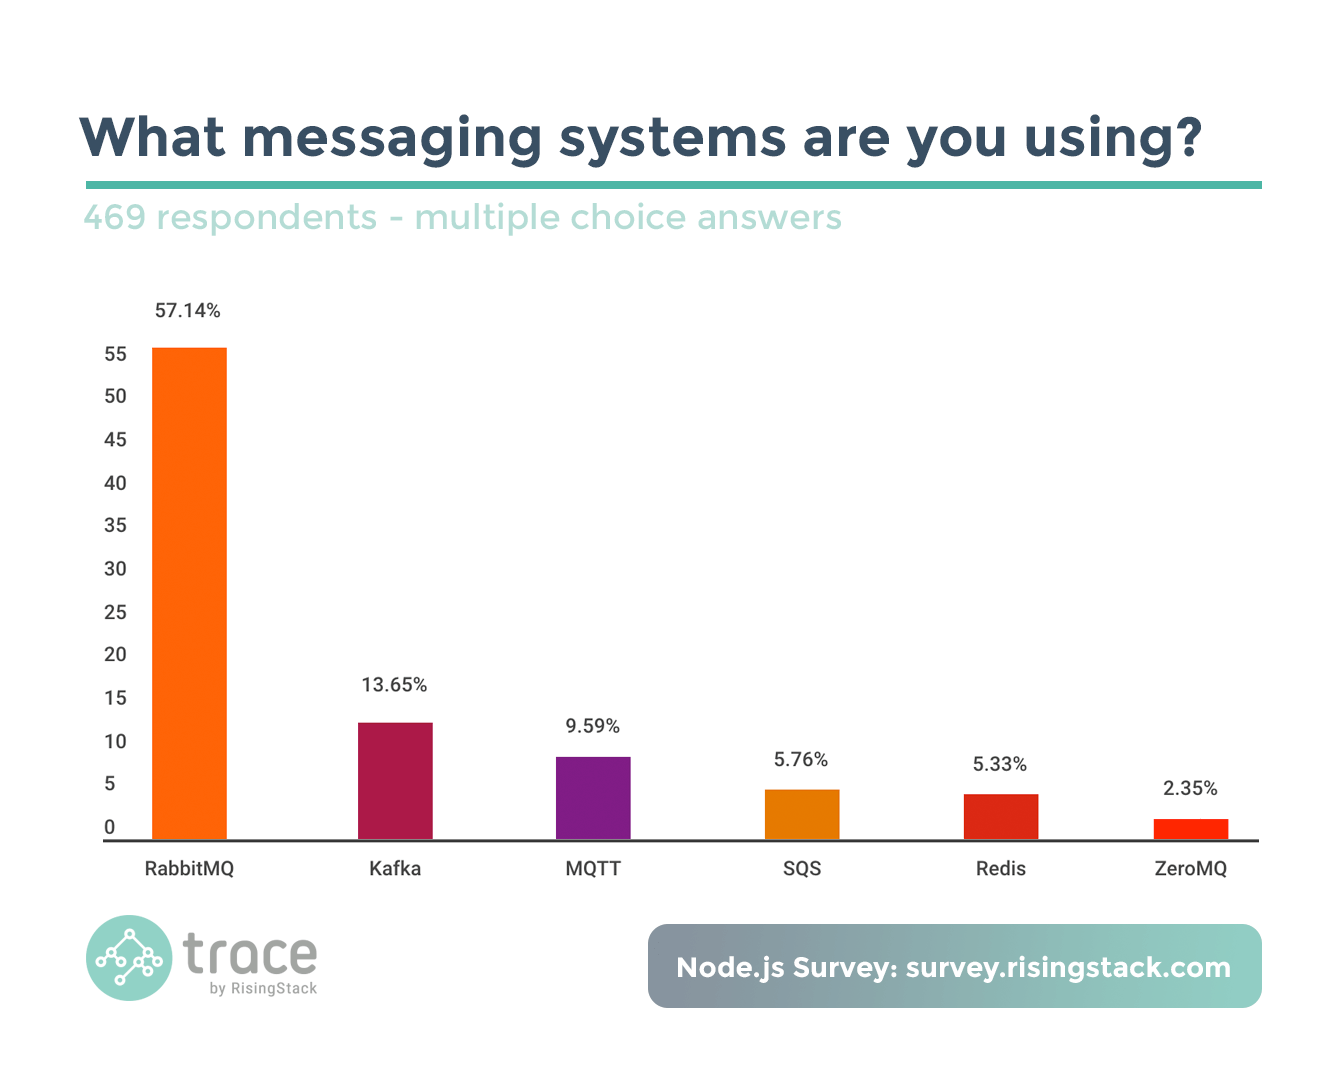 Node.js Survey - Messaging system usage